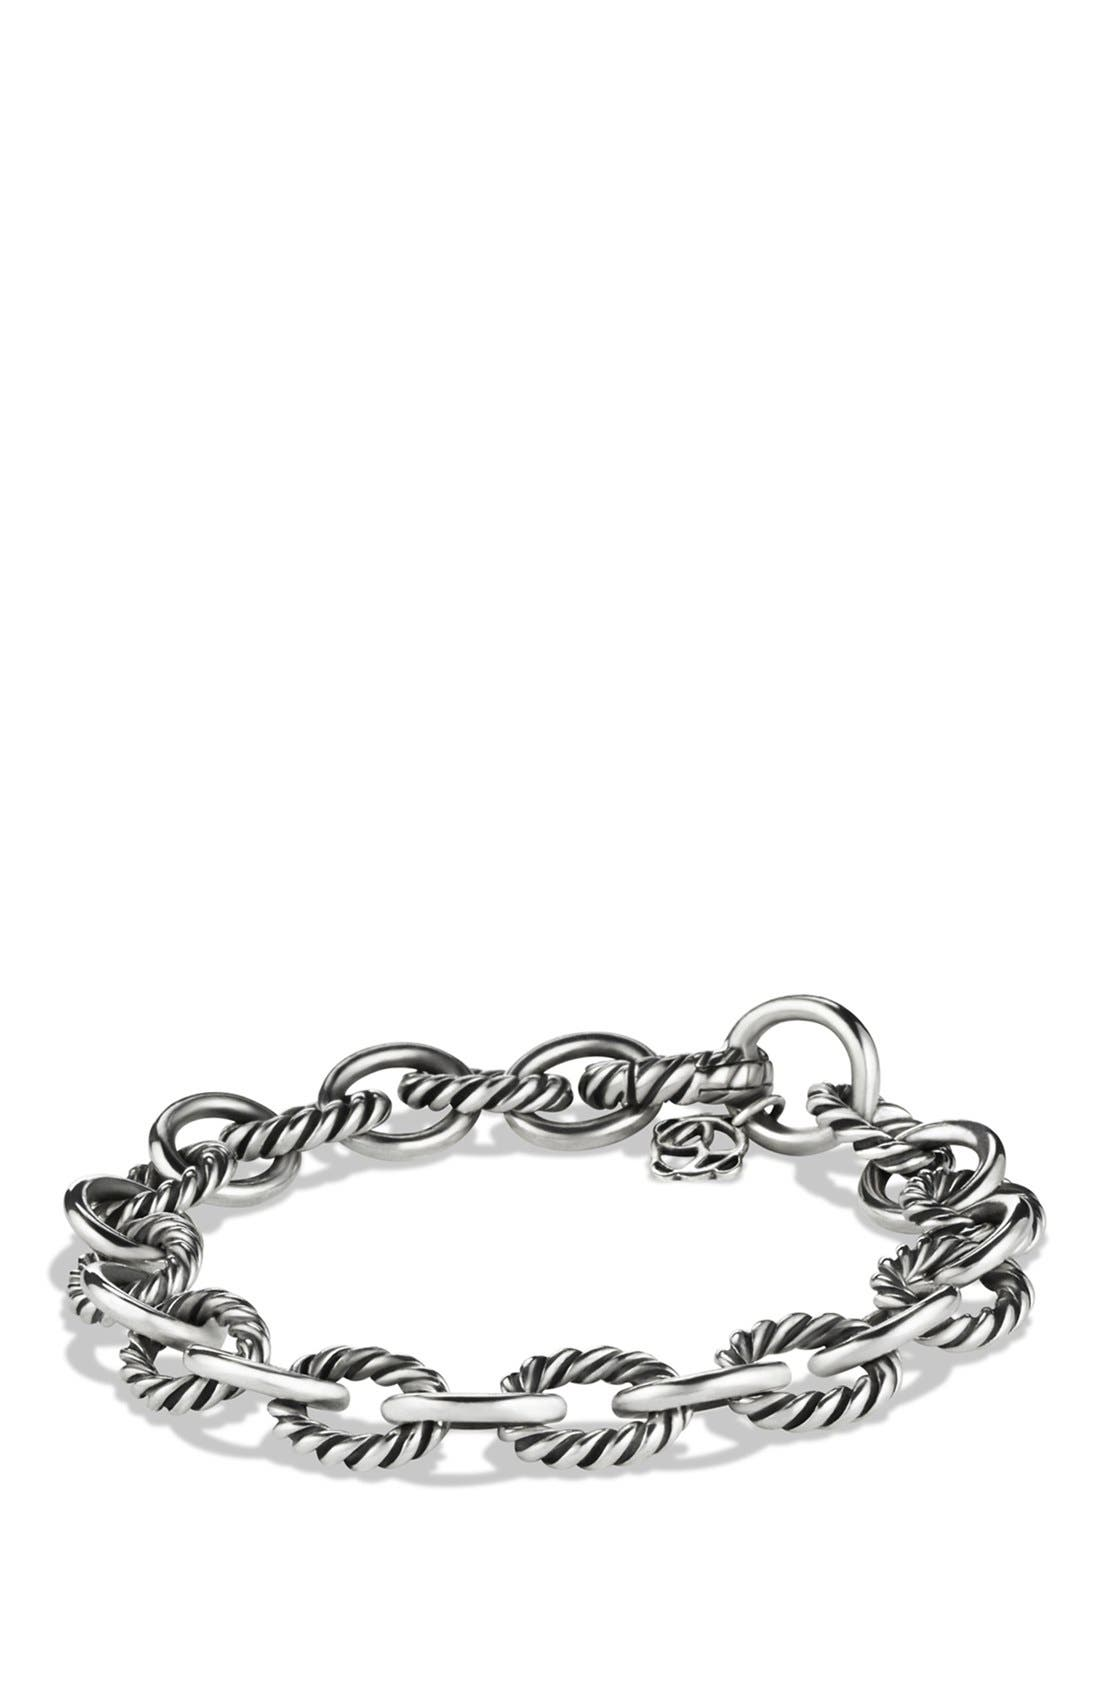 Alternate Image 1 Selected - David Yurman 'Oval' Link Bracelet